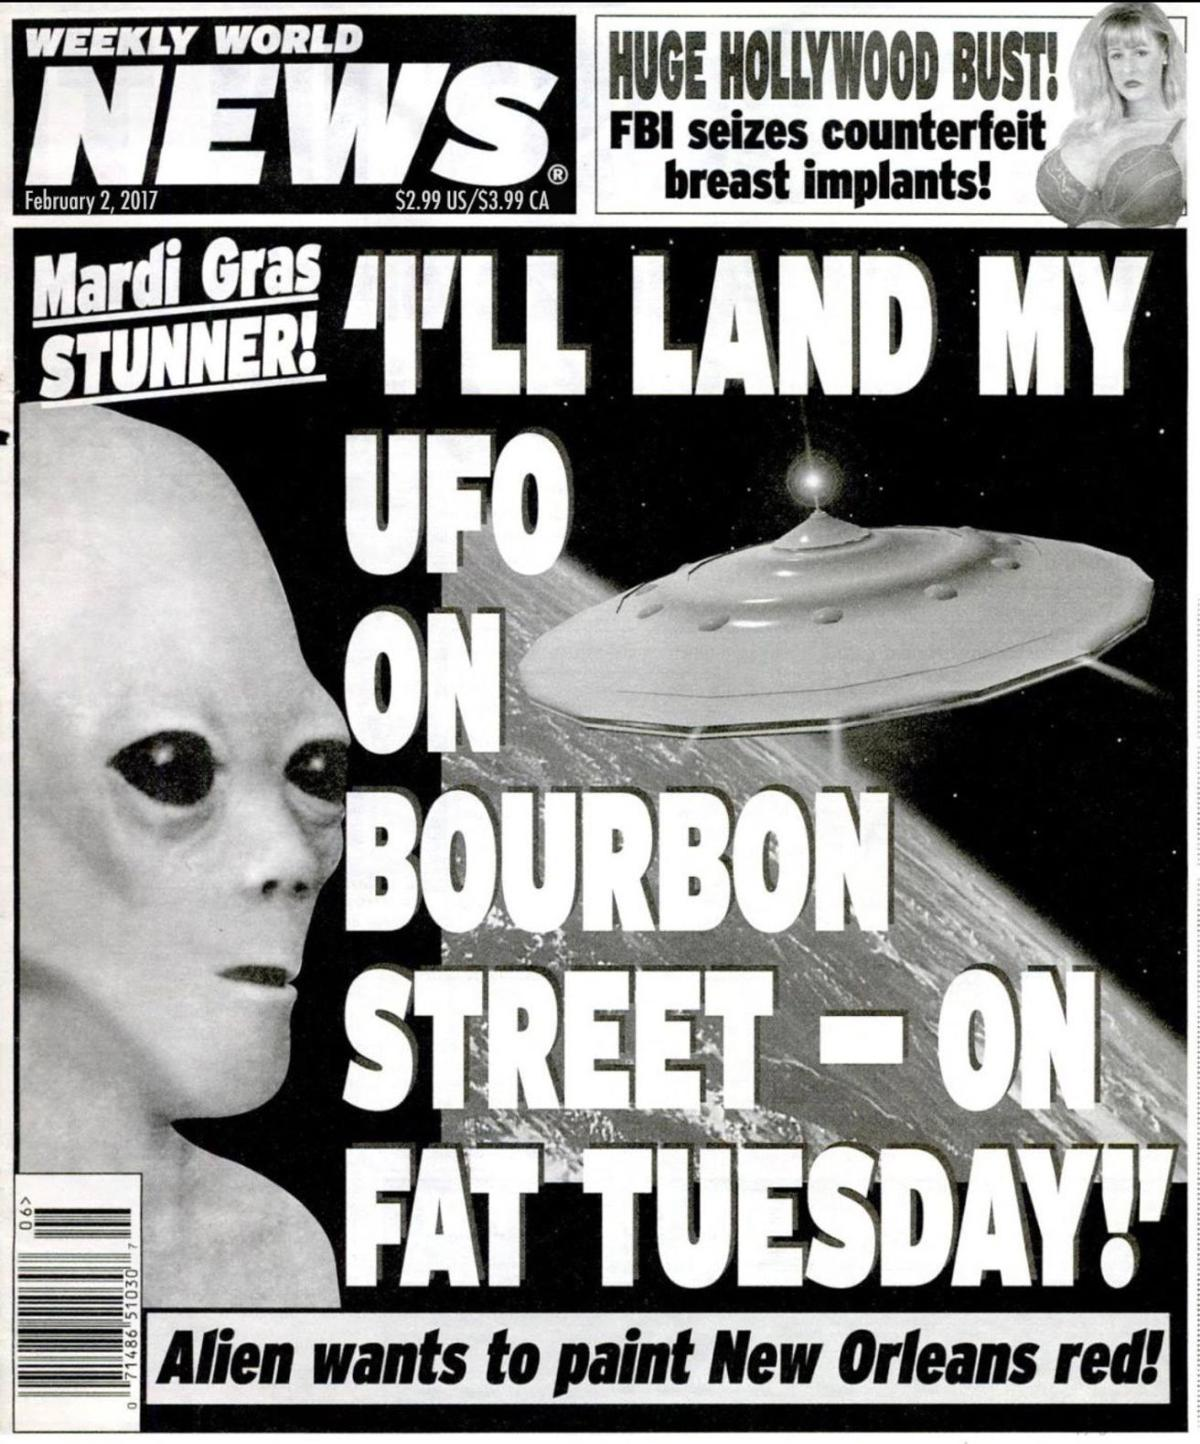 Report: Alien to land UFO on Bourbon Street on Fat Tuesday_lowres